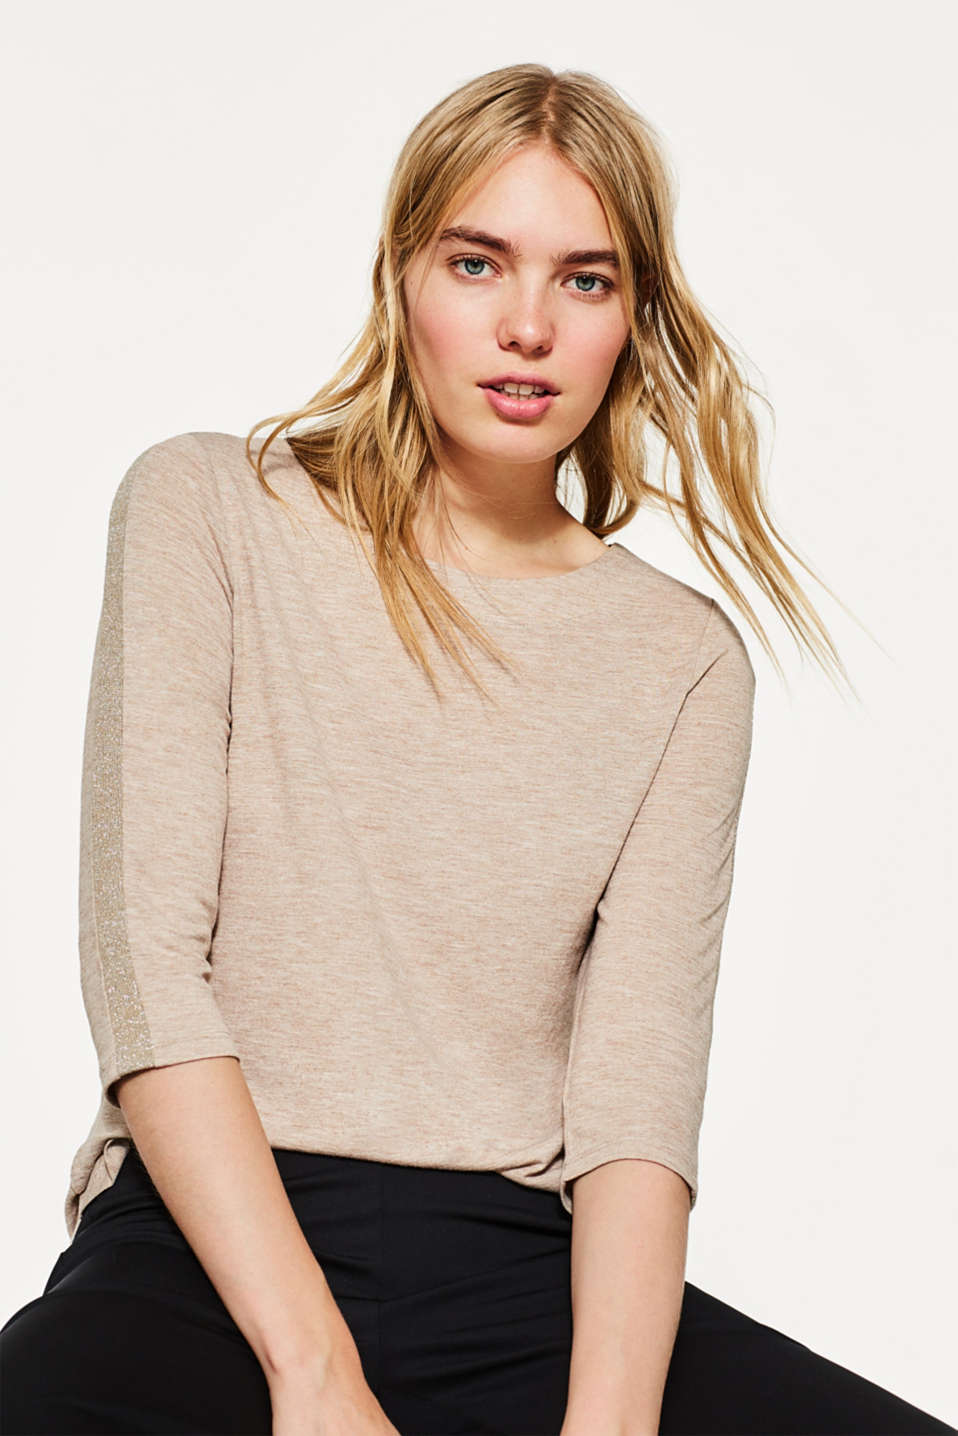 Esprit - Flowing top with glittery stripes